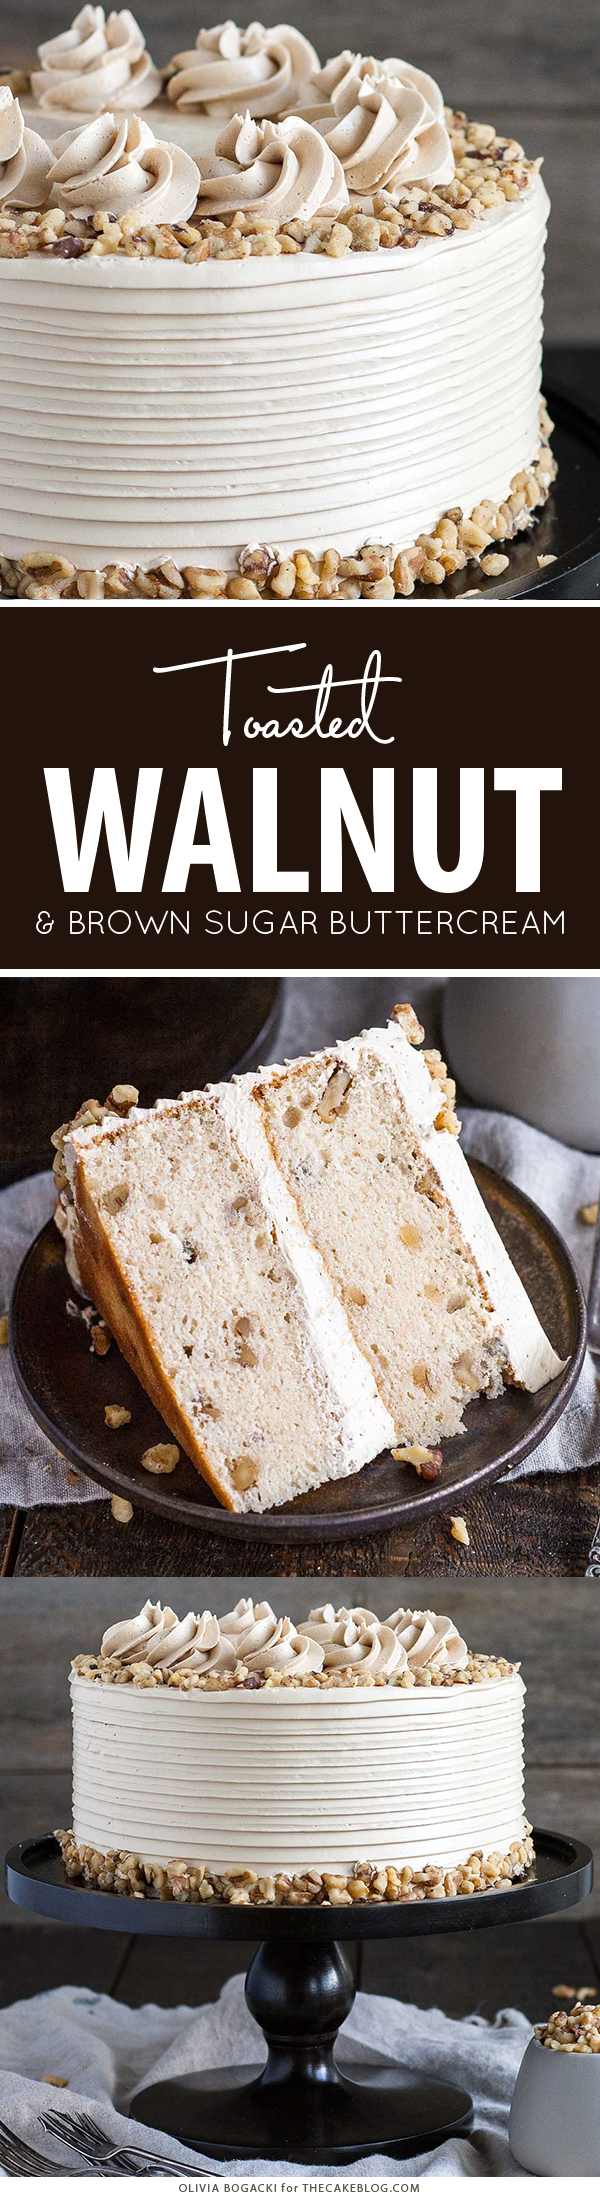 Walnut Cake with Brown Sugar Buttercream | by Olivia Bogacki for TheCakeBlog.com